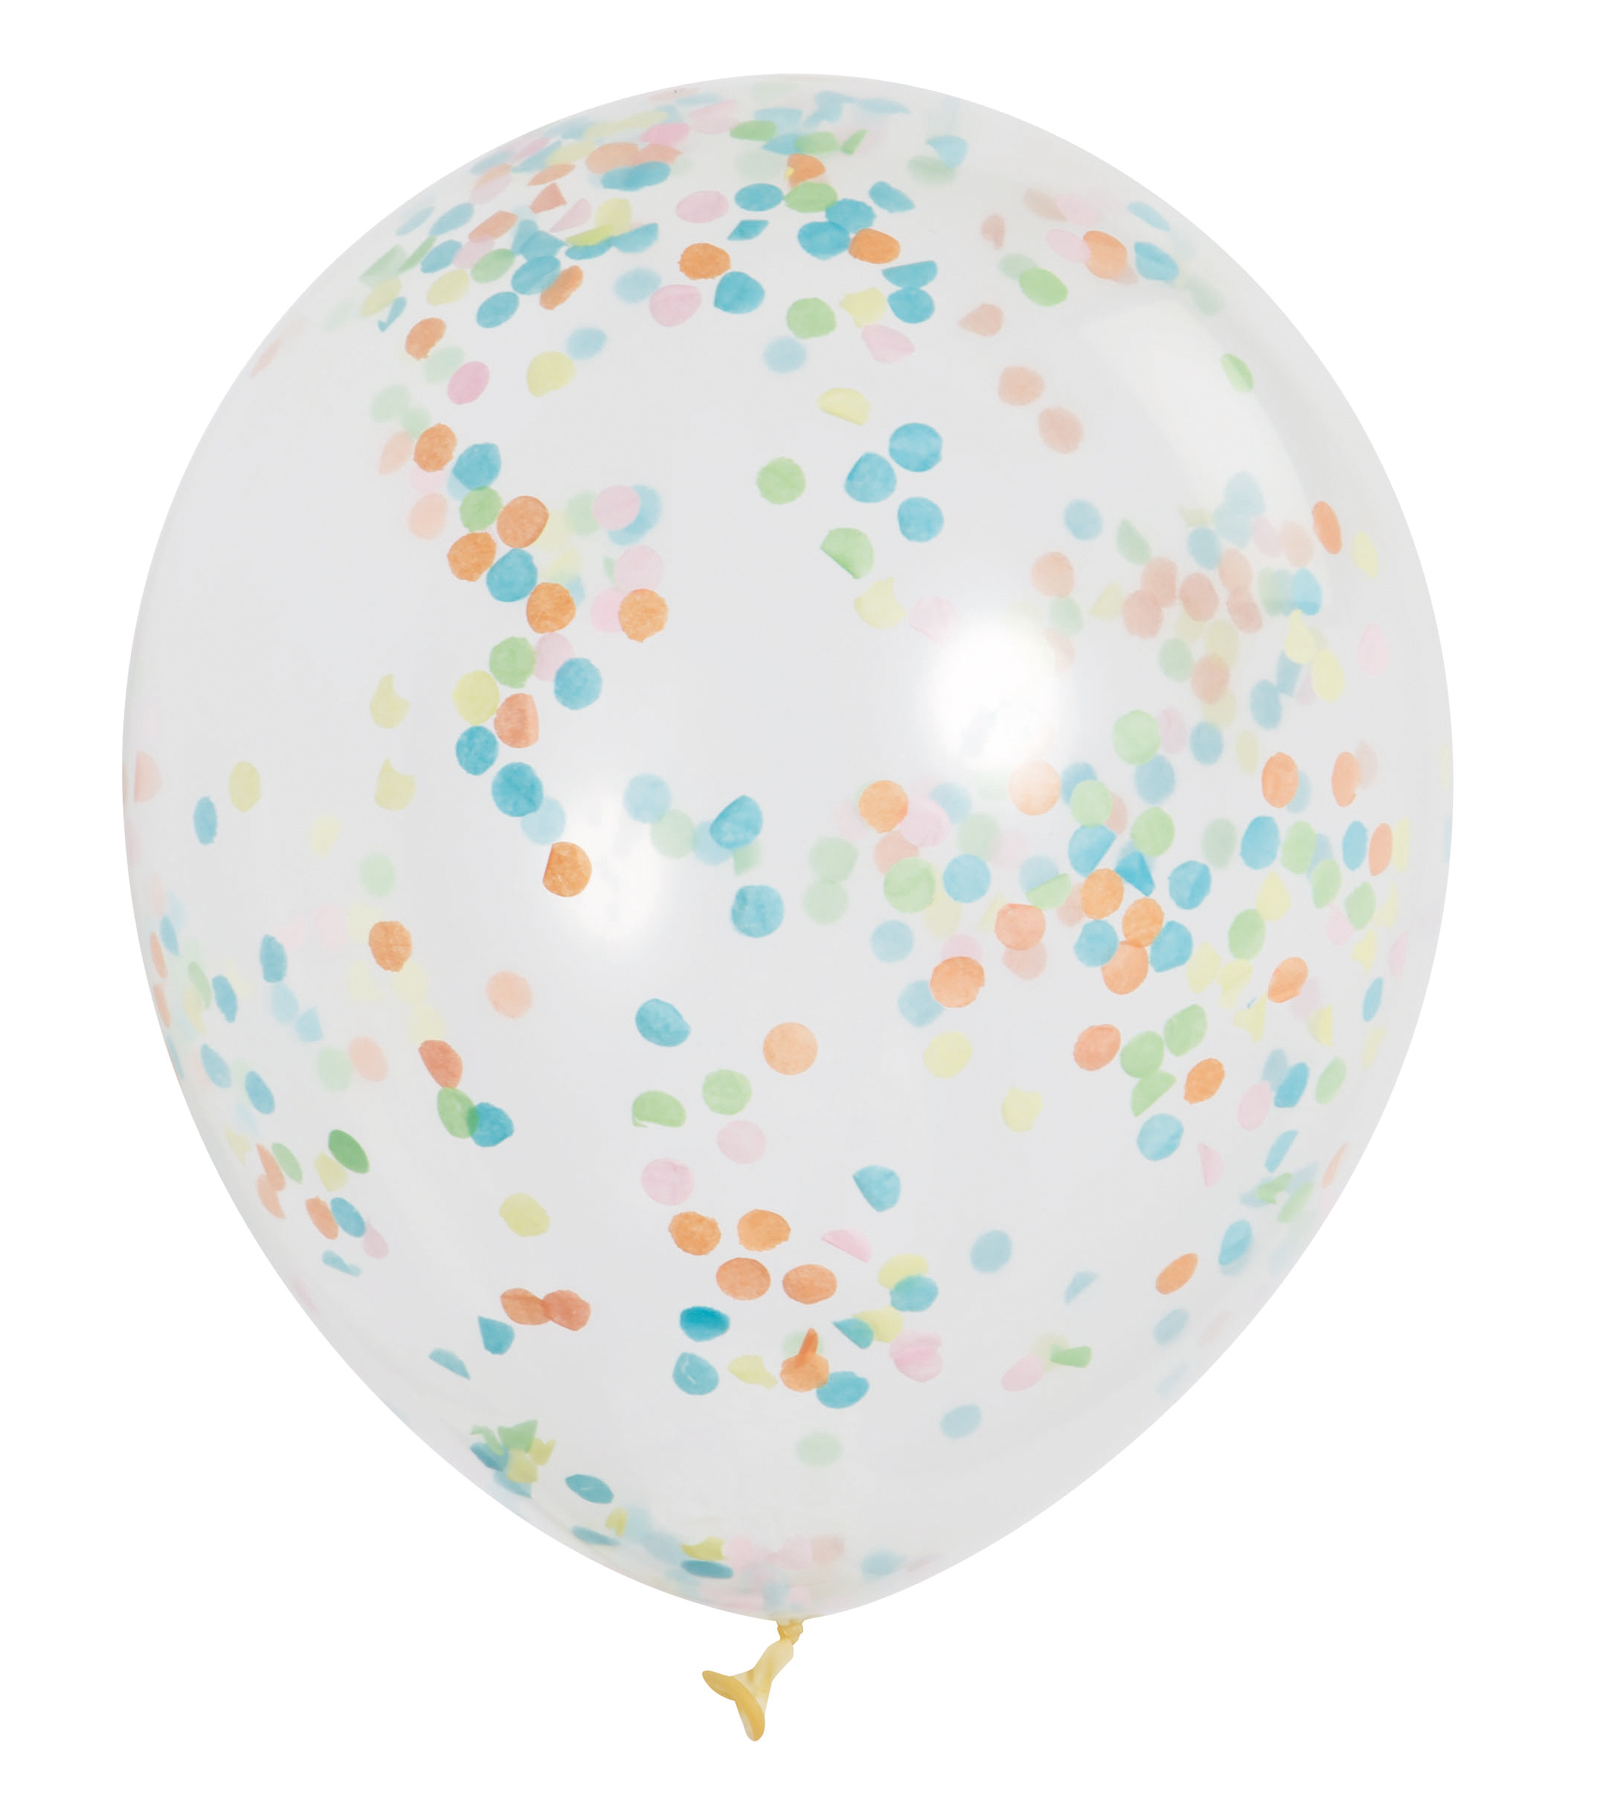 Latex Confetti Balloons, 12 in, Bright Multicolor, 6ct